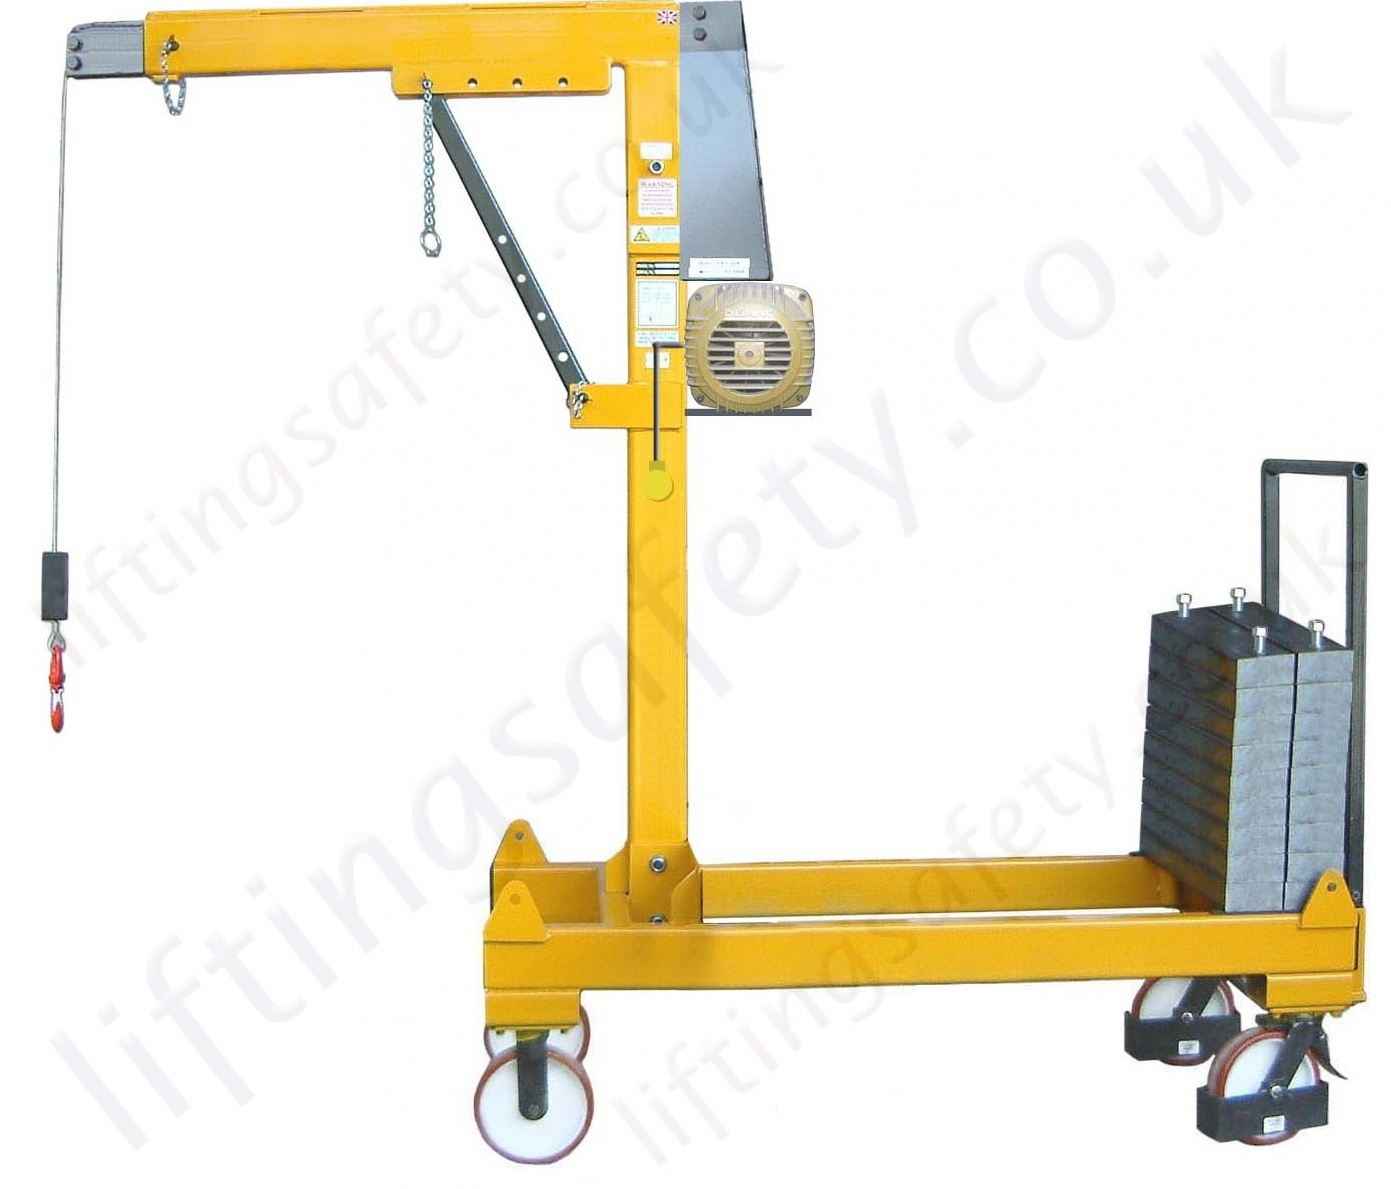 Steel Lift Arm : Manual or powered rigid arm knock down counterbalance